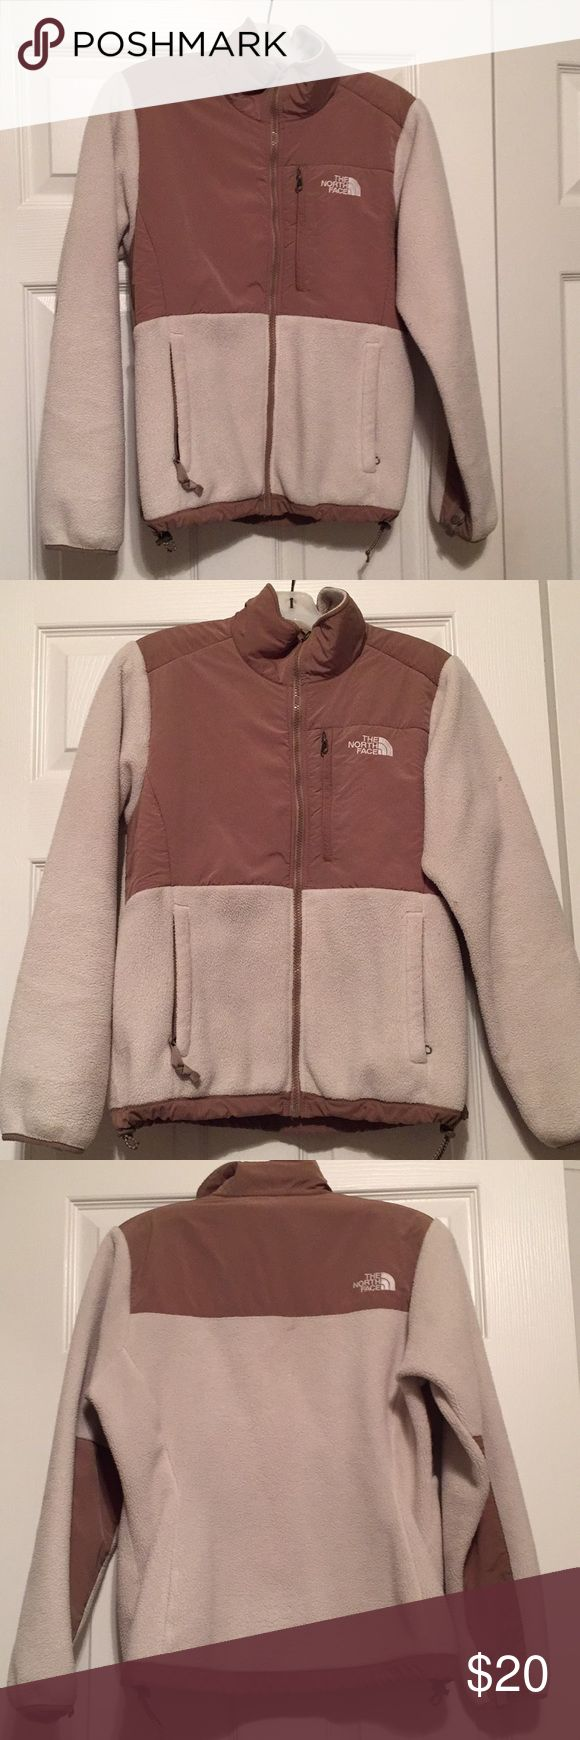 Ladies North Face Jacket Ladies North Face Jacket  Size small In great condition Ivory and brown  Full front zipper  Adjustable waist  Zipping pockets North Face Jackets & Coats